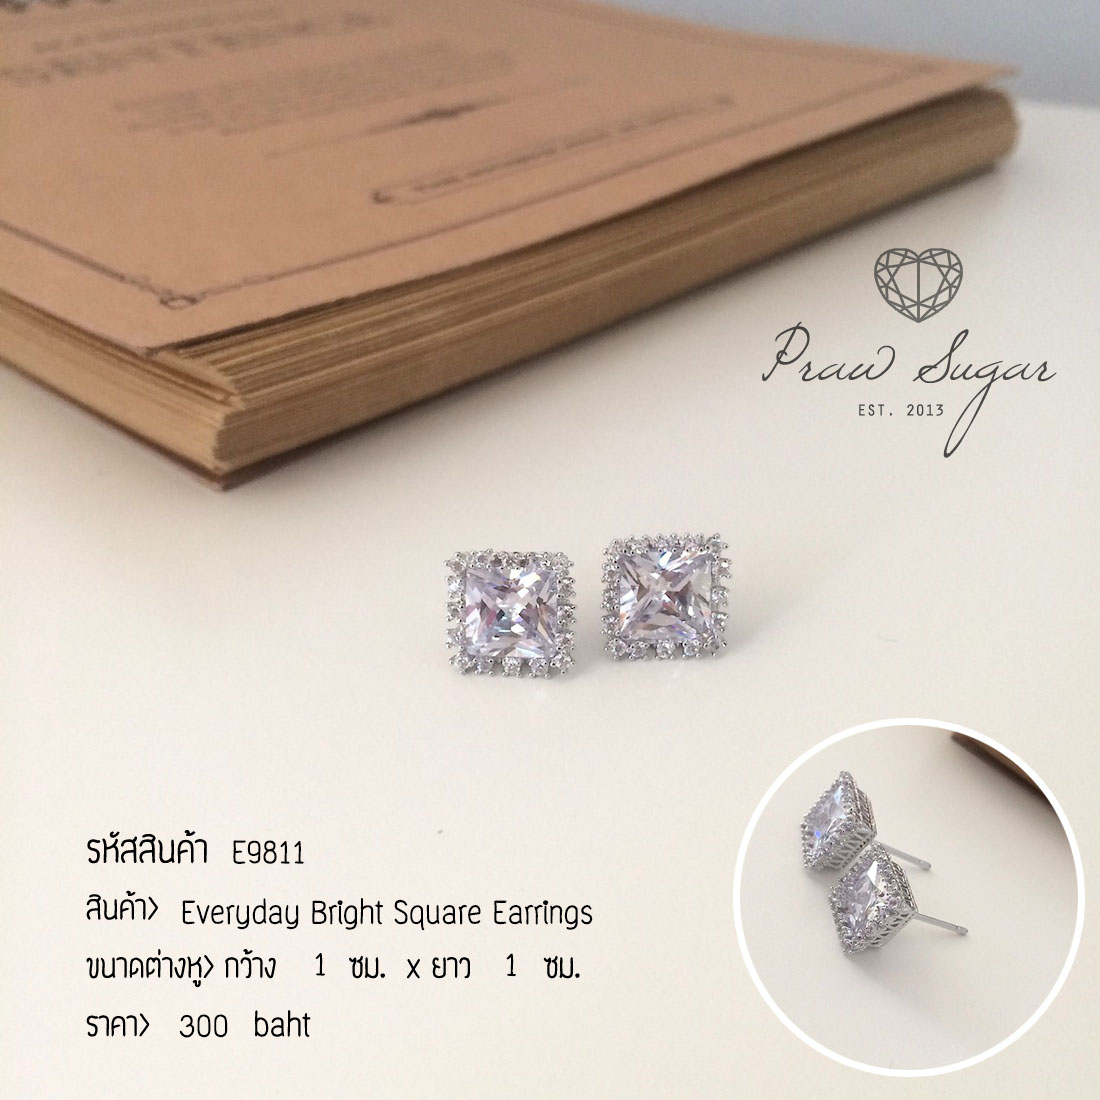 Everyday Bright Square Earrings